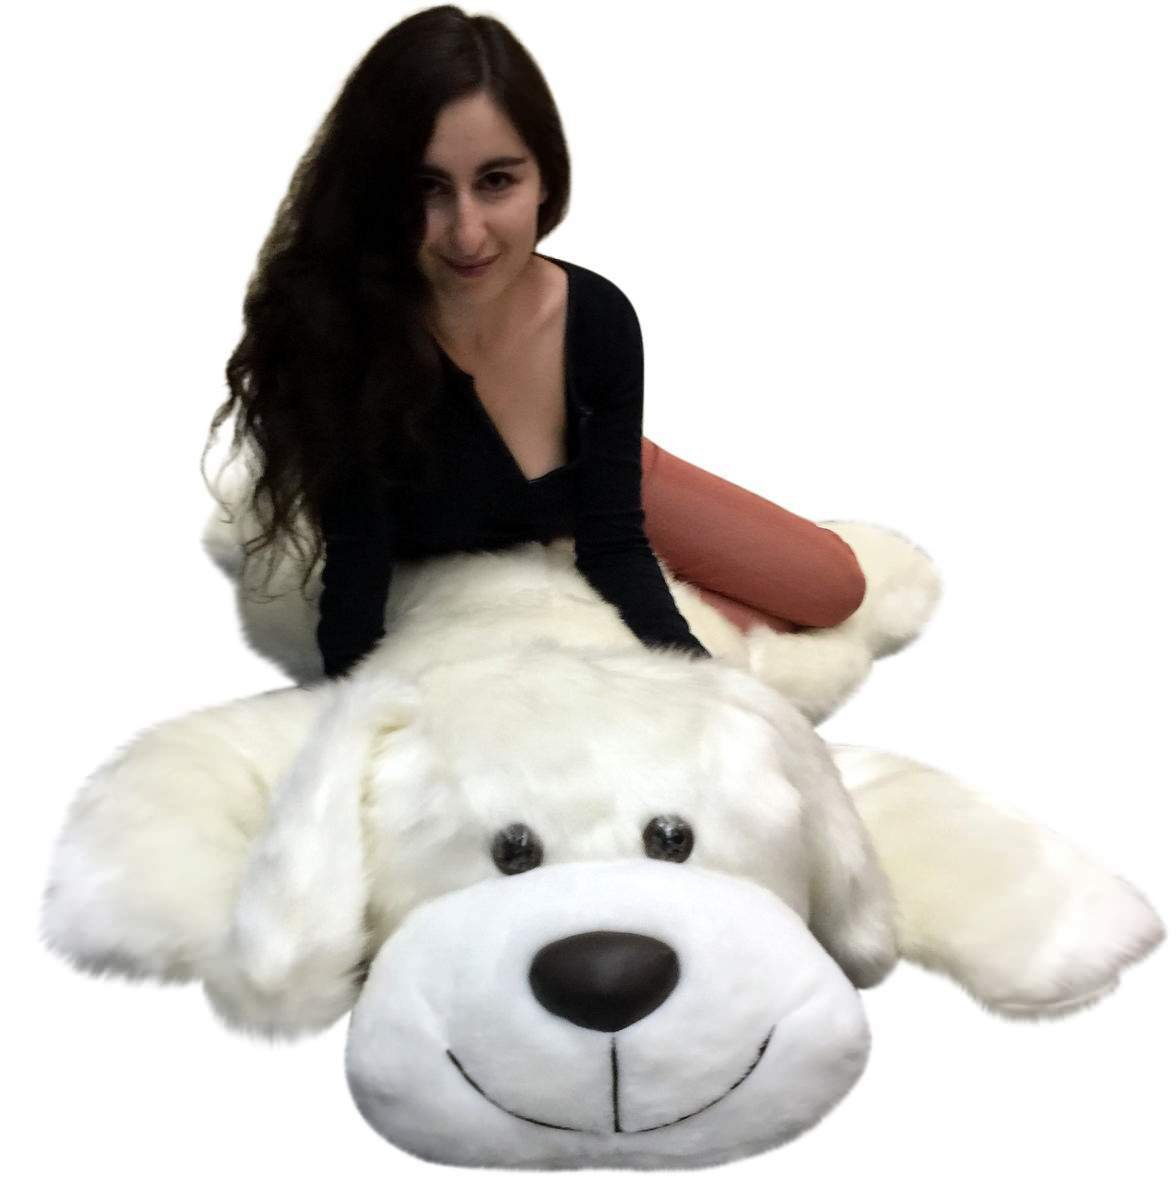 American Made Giant Stuffed 5 Foot Dog 60 Inch Soft Large Plush Puppy White Color by Big Plush